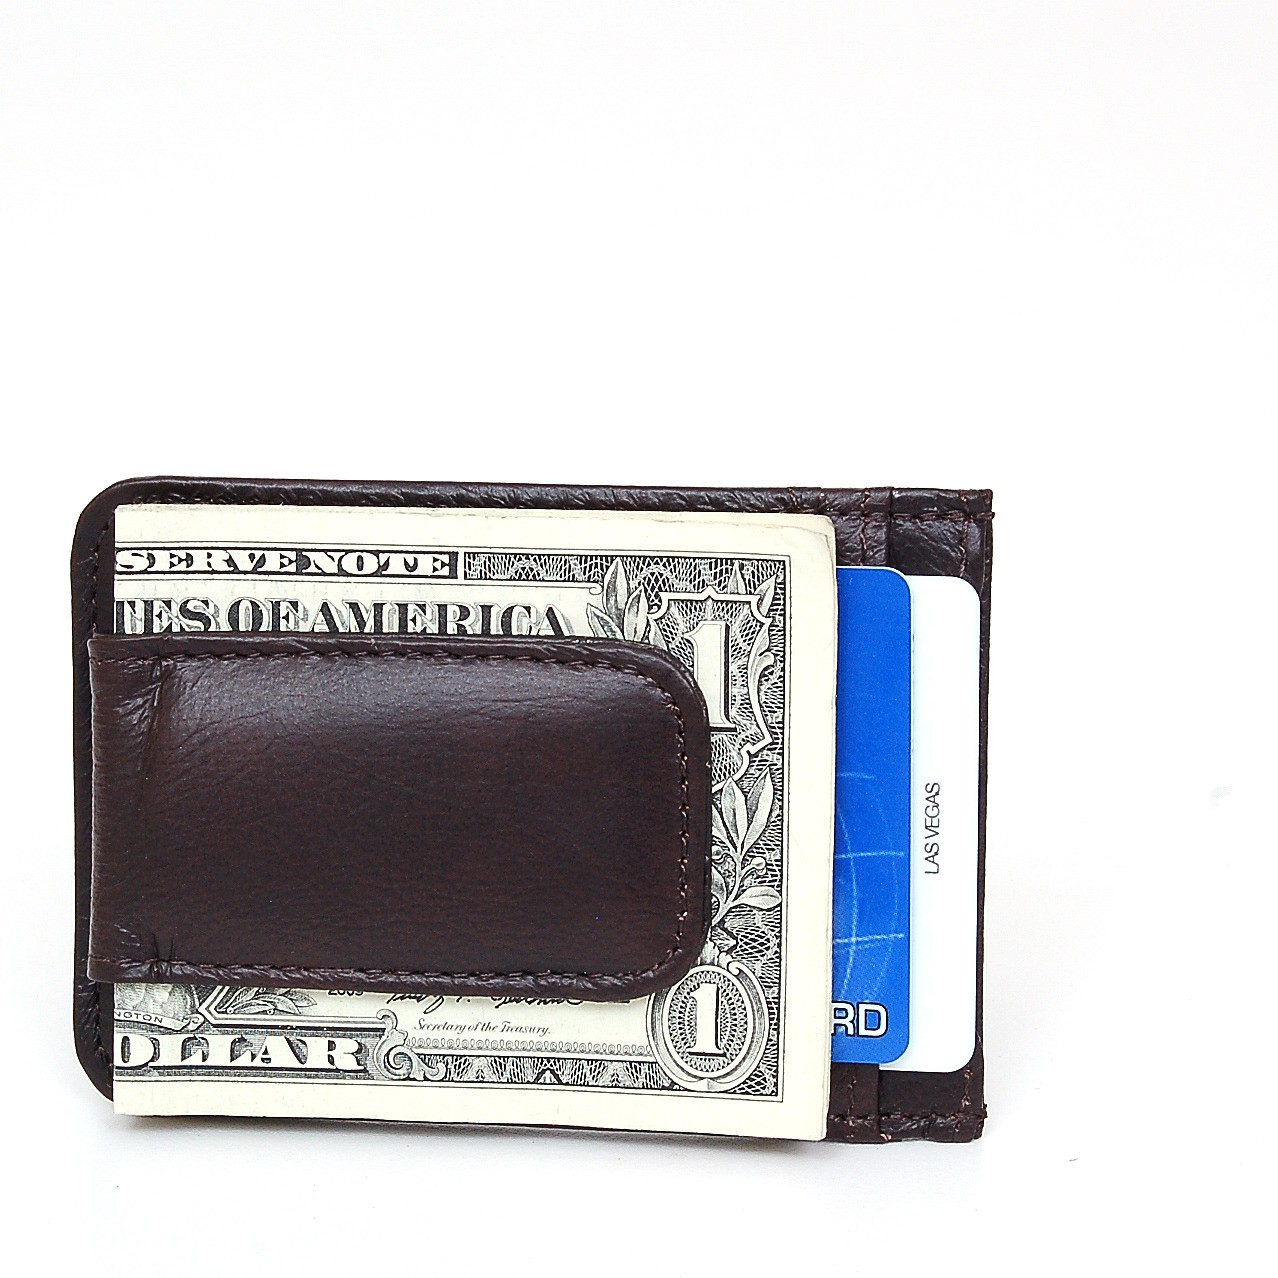 Pocket wallet style money clip one of our most popular money clips